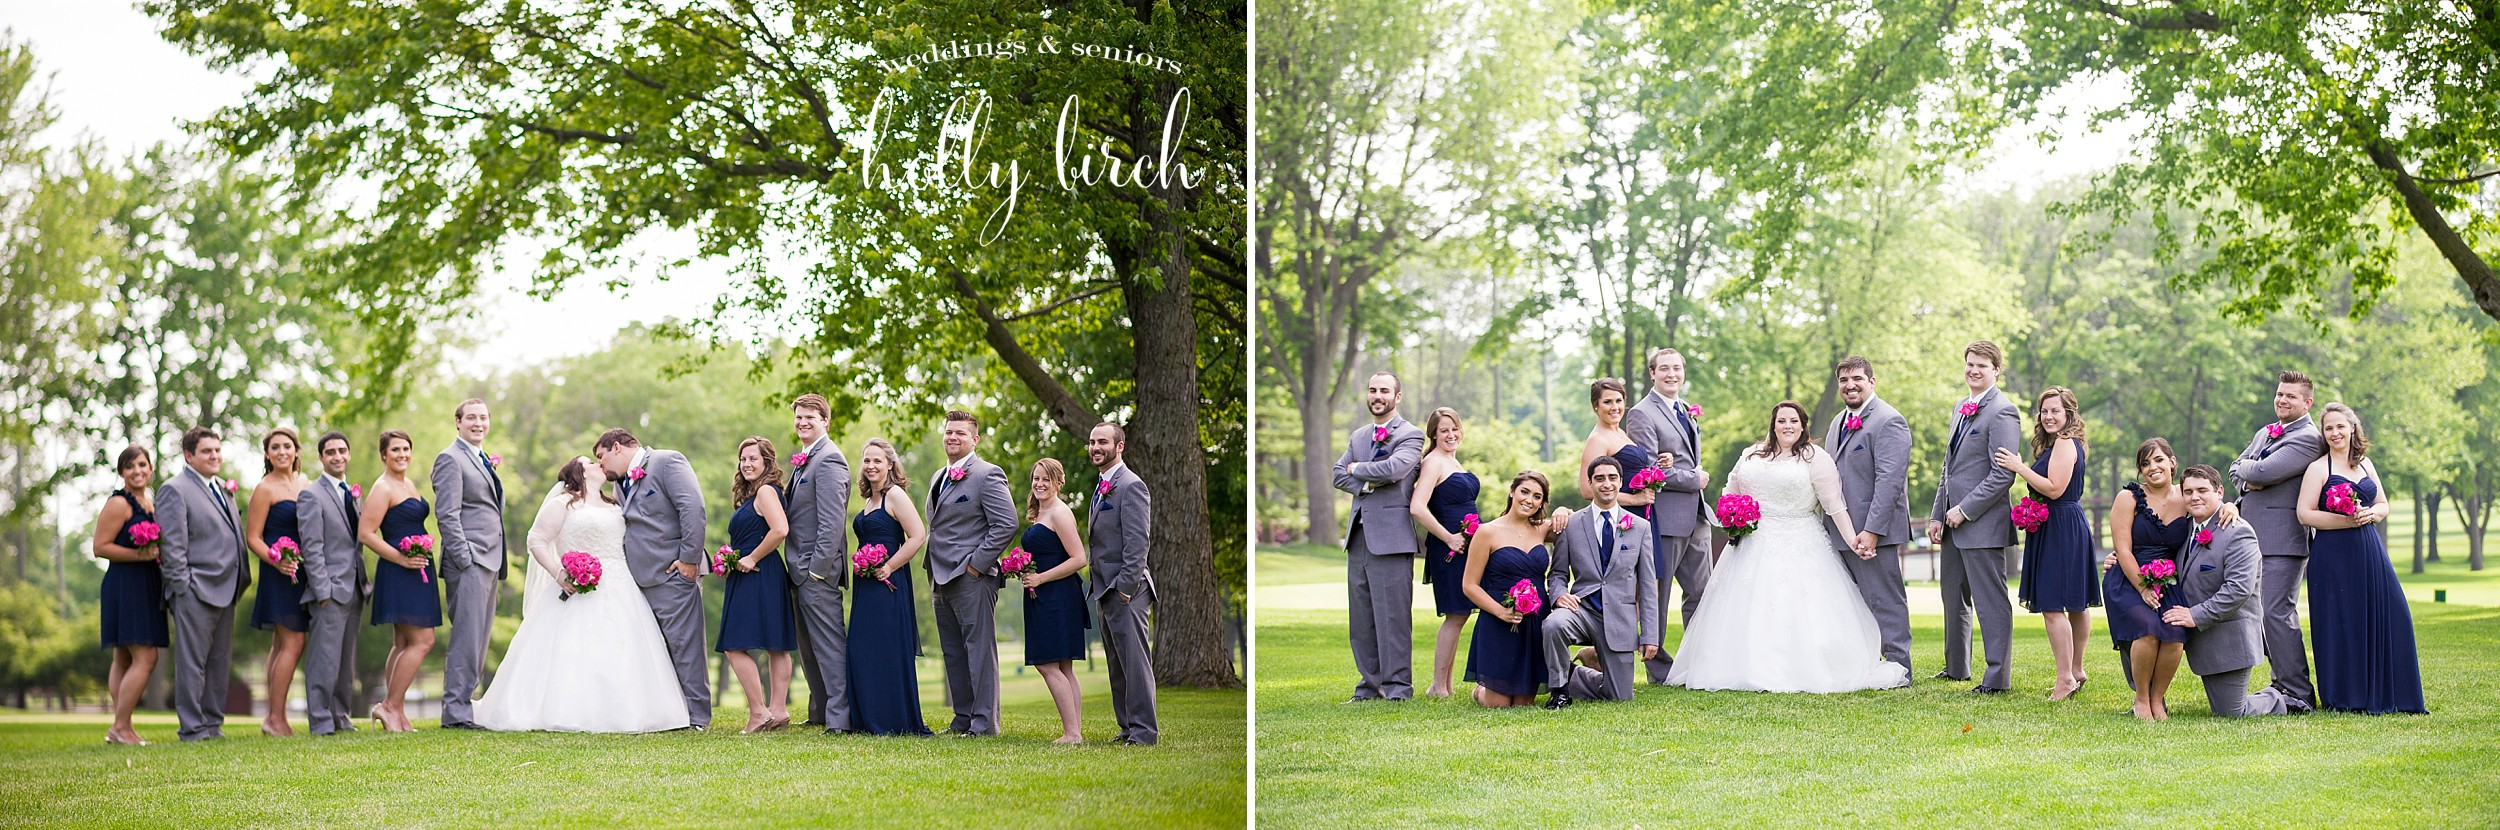 navy pink wedding party